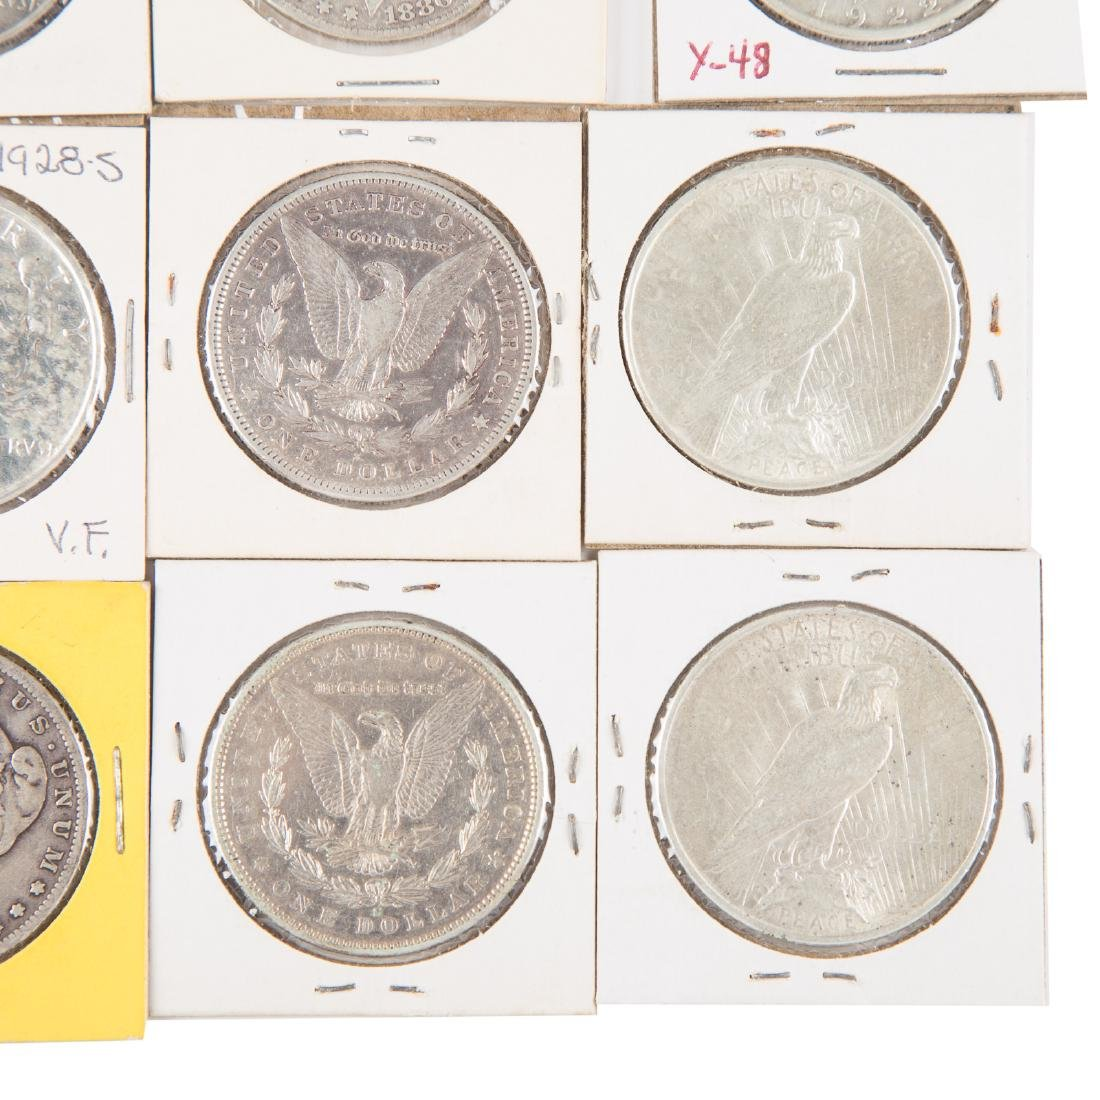 [US] 33 Morgan and Peace Silver Dollars - 3